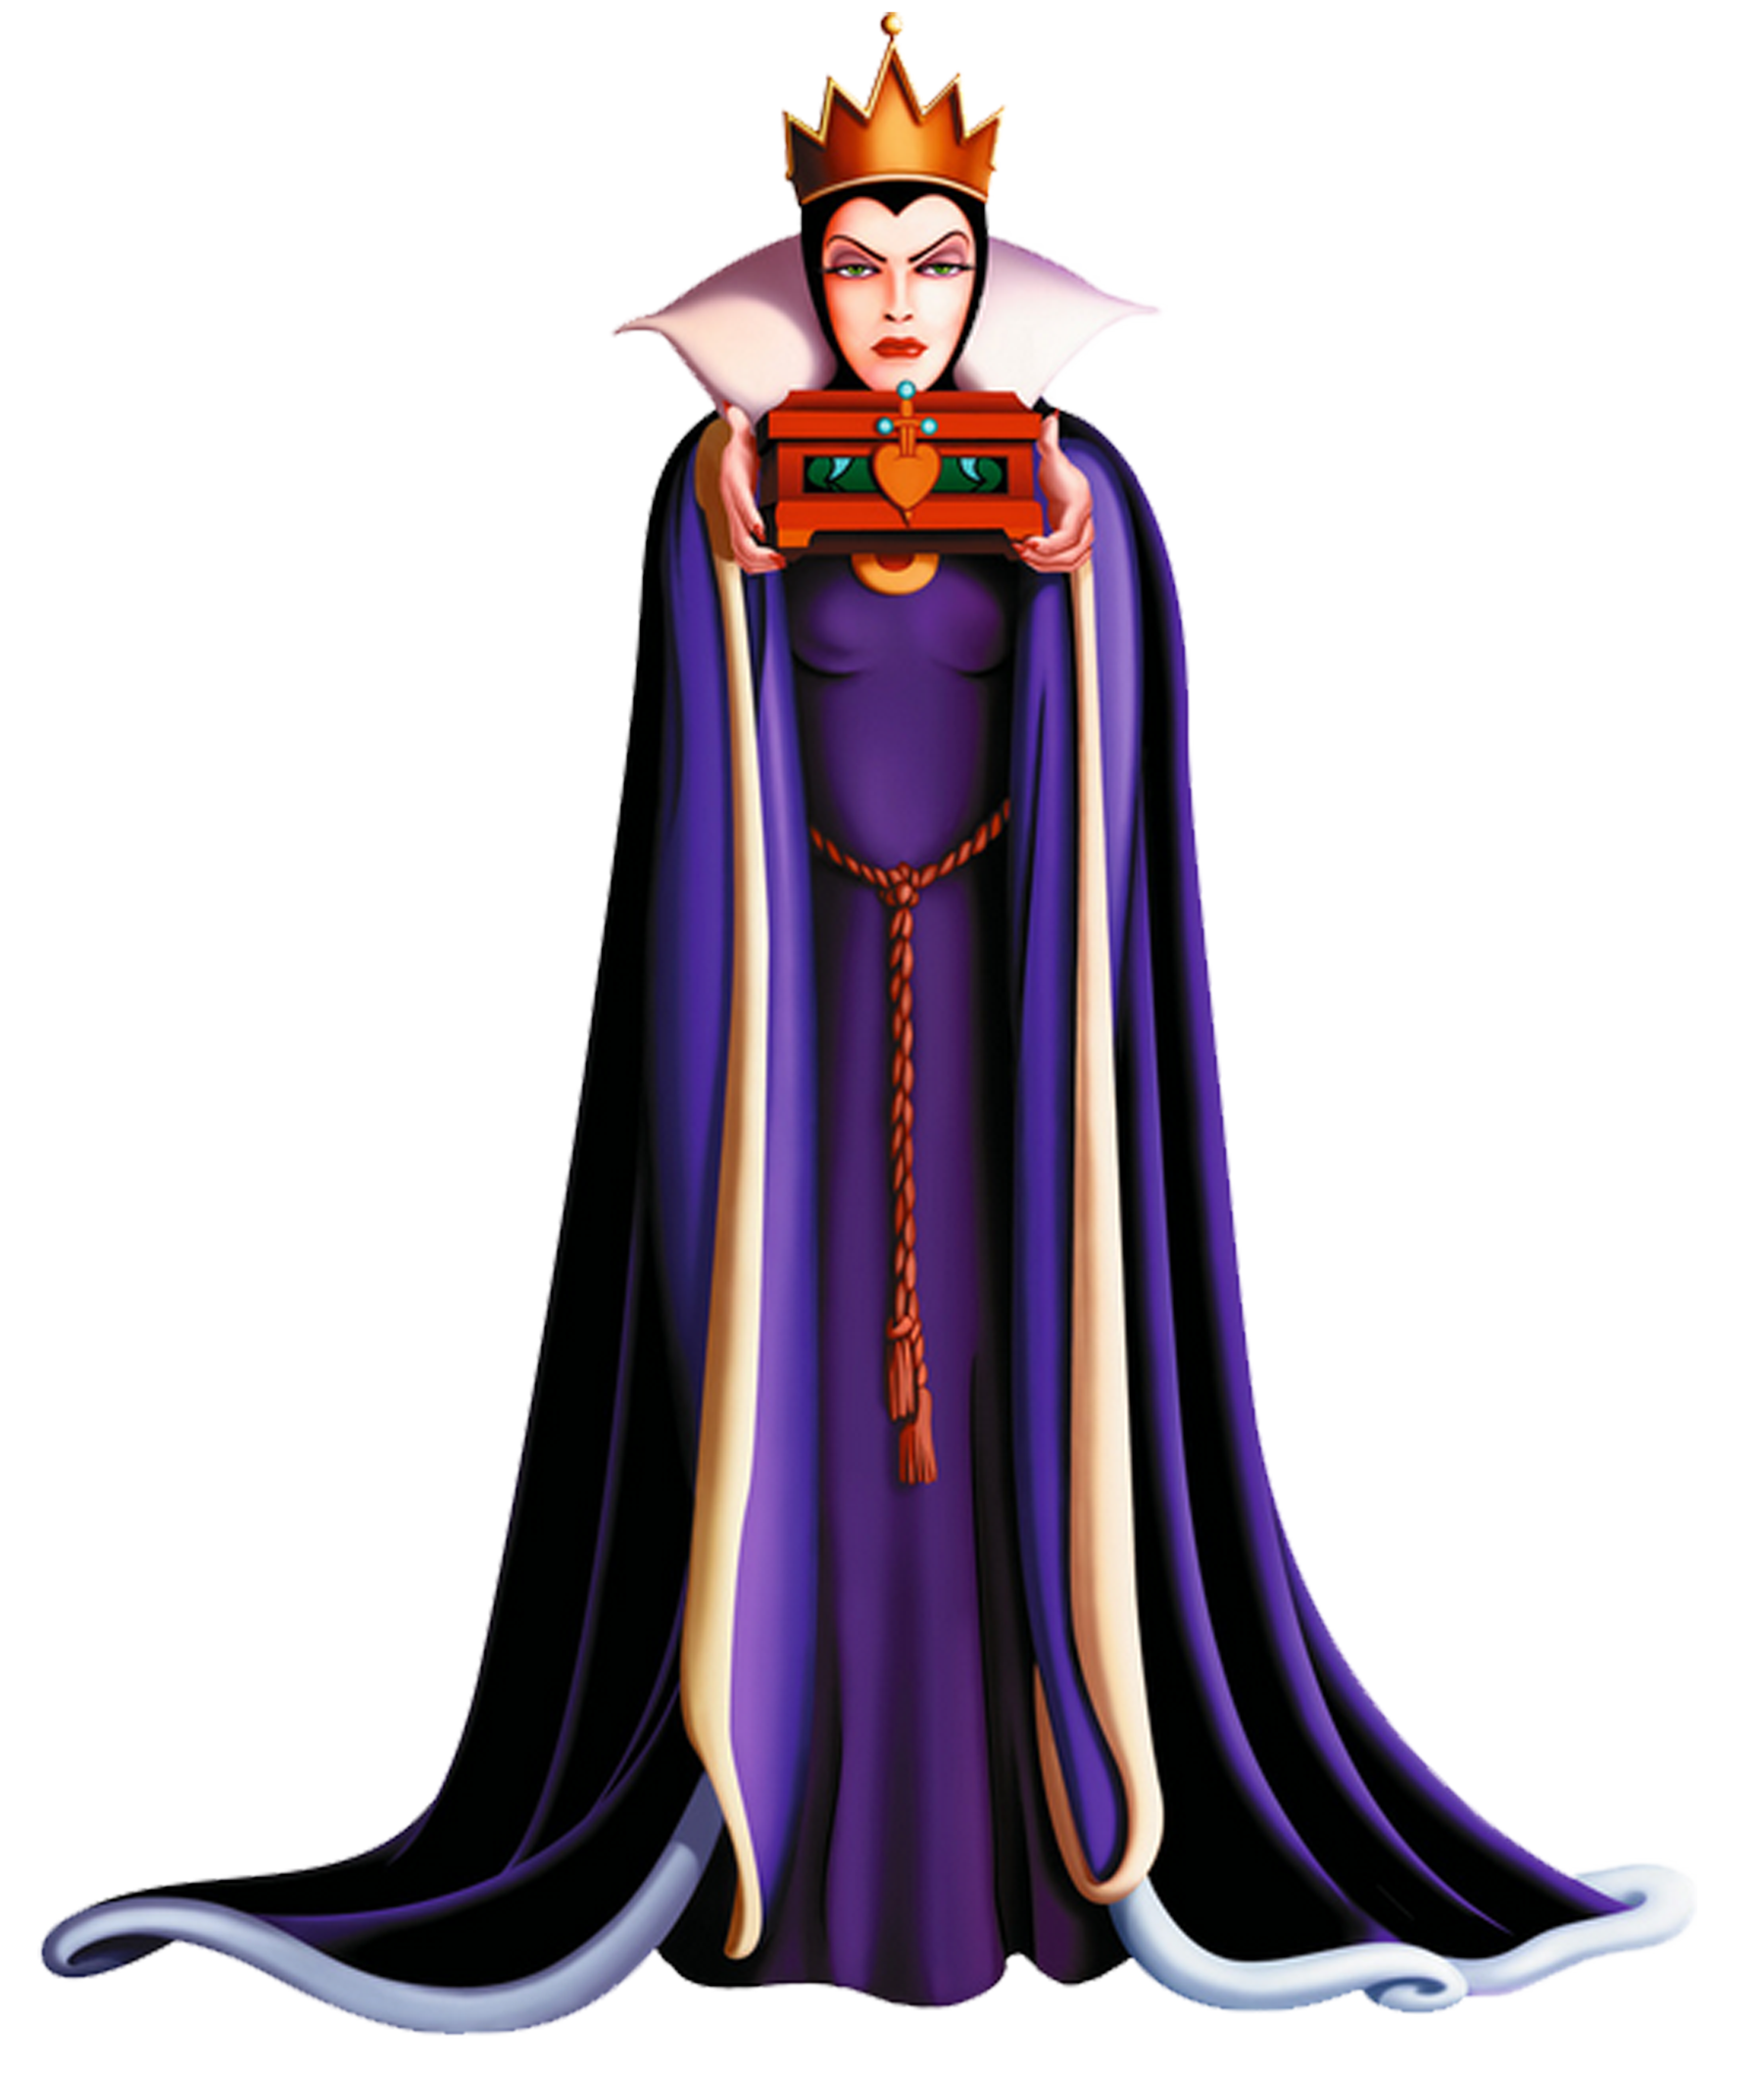 Evil queen crown clipart png library stock Queen Grimhilde | Villains Wiki | FANDOM powered by Wikia png library stock